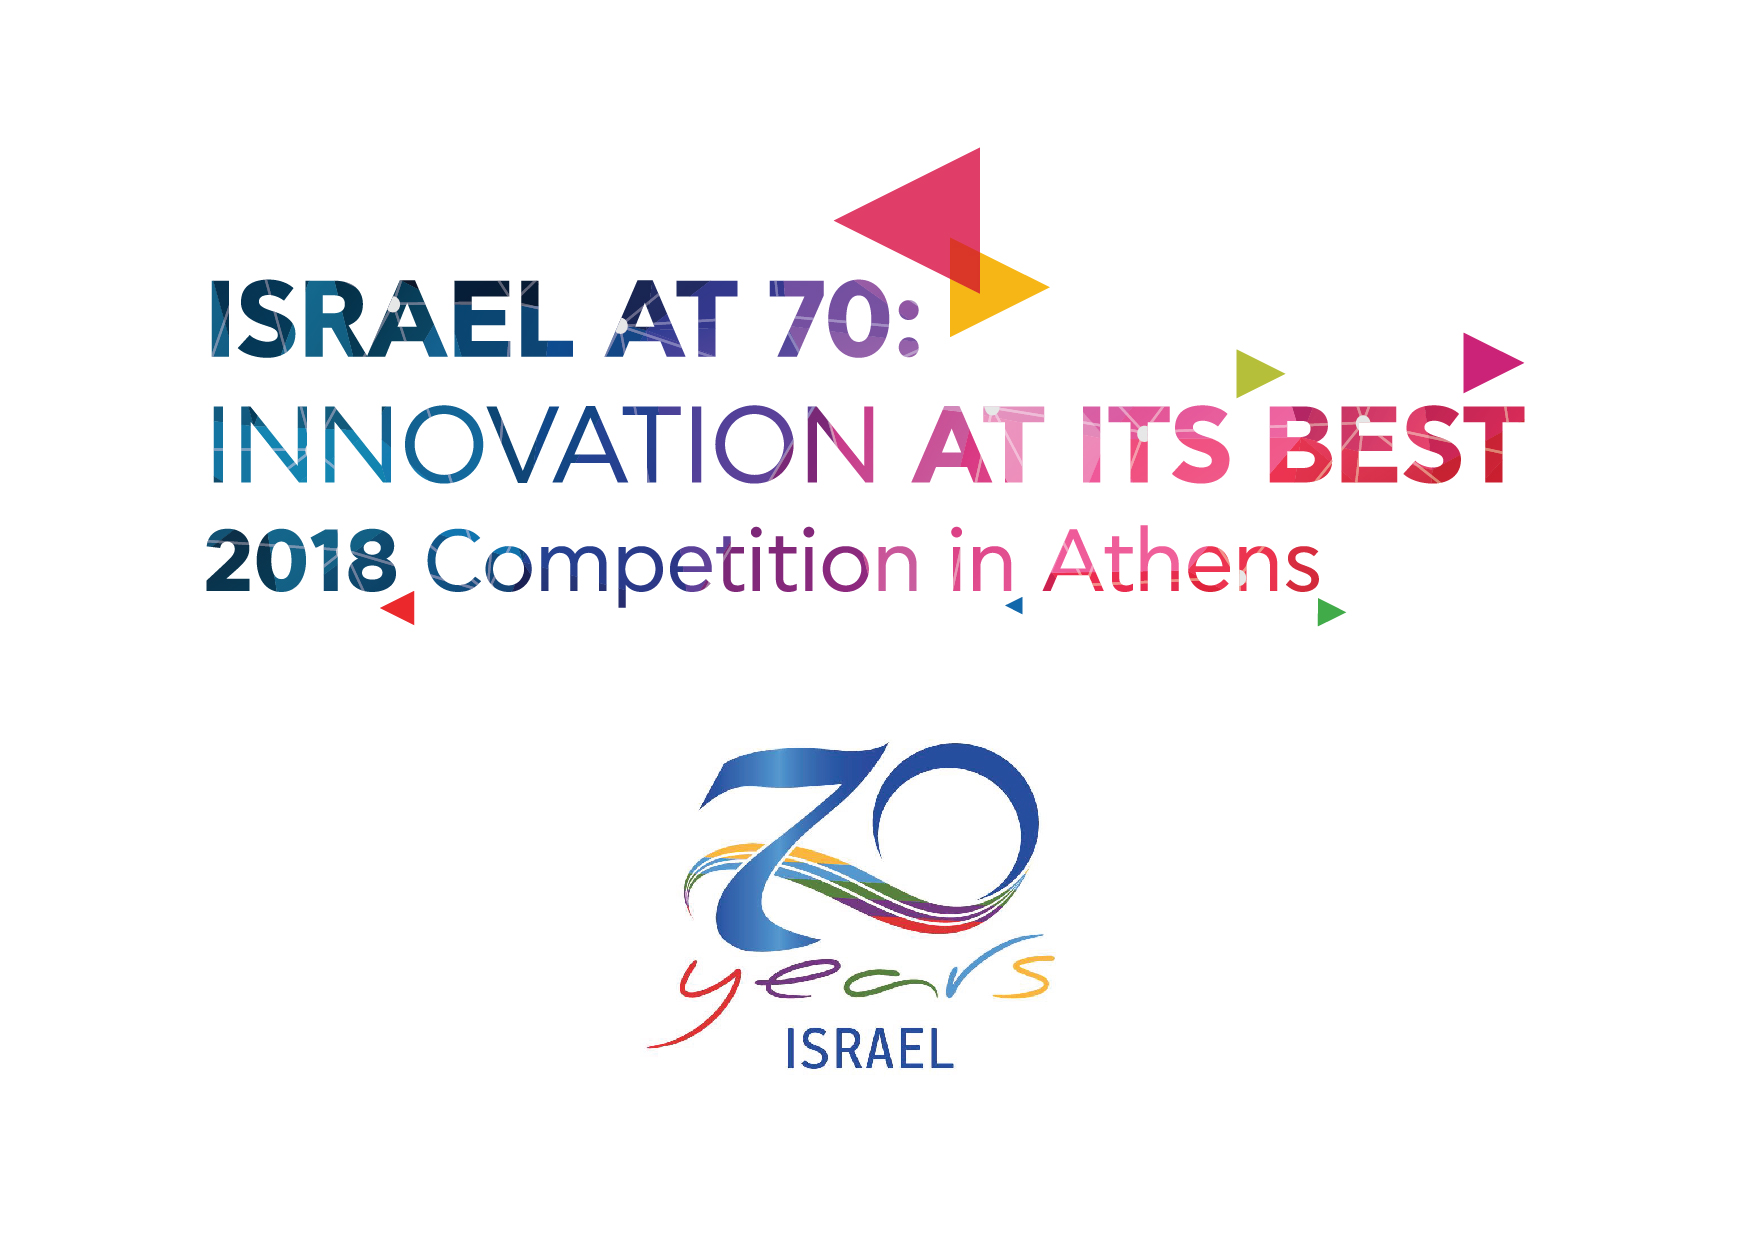 Israel at 70: Innovation At Its Best - Industry Disruptors